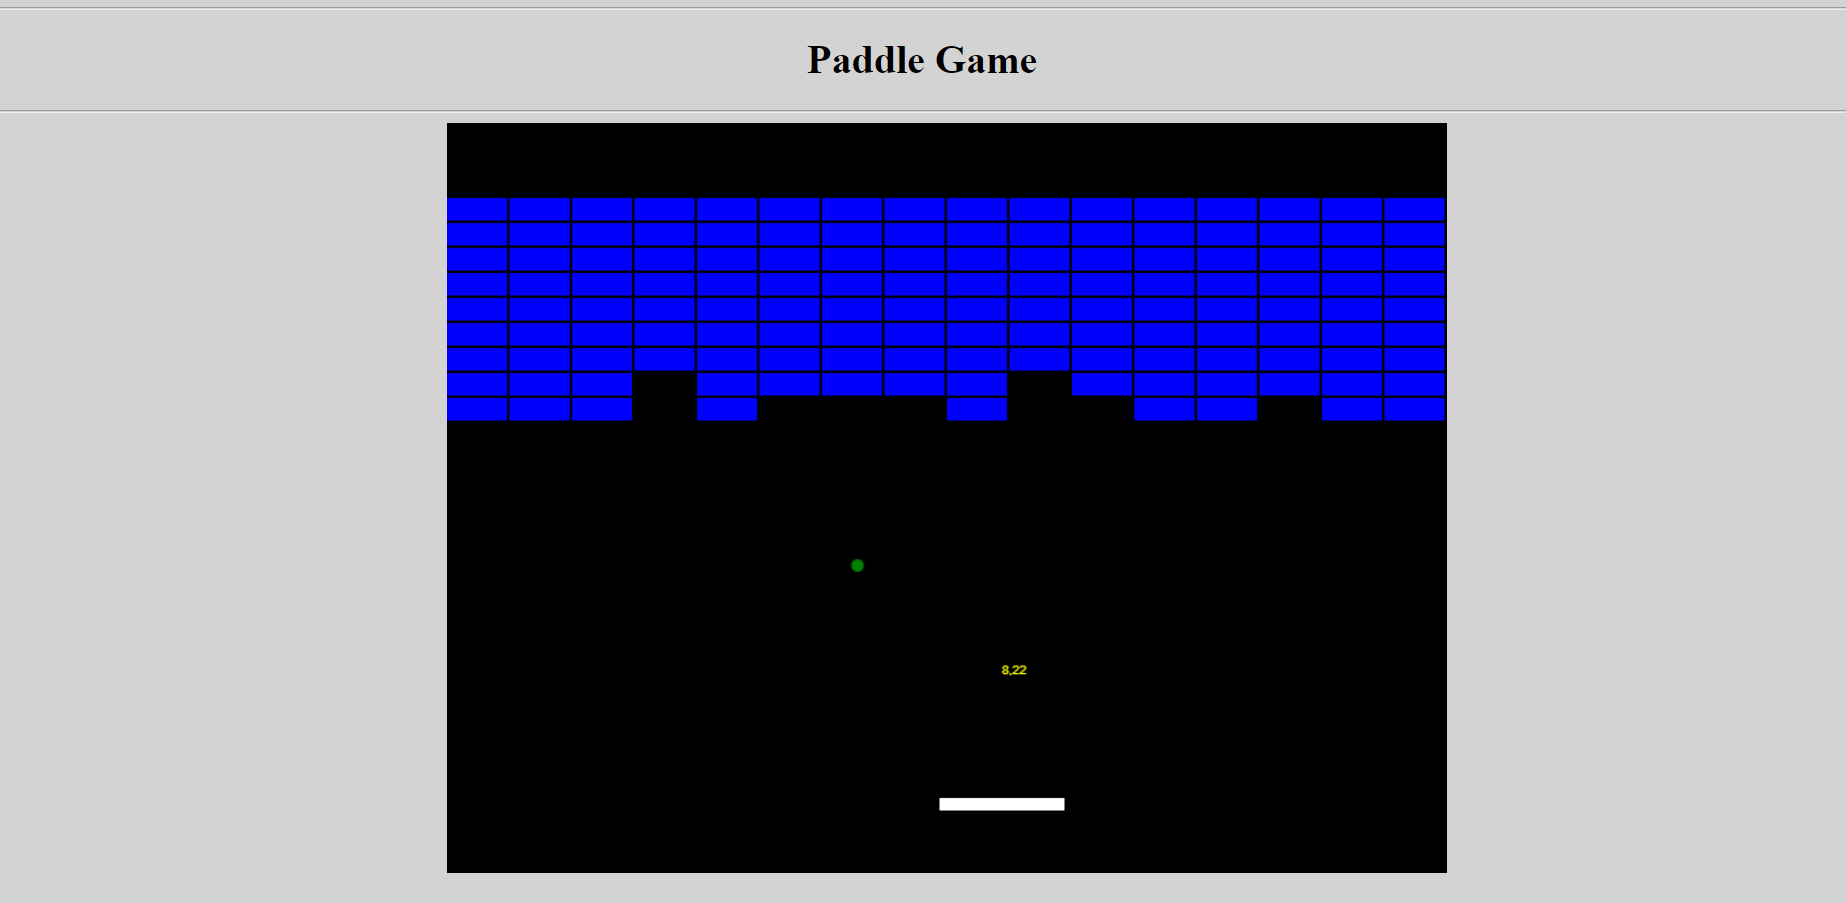 image of Paddle Game